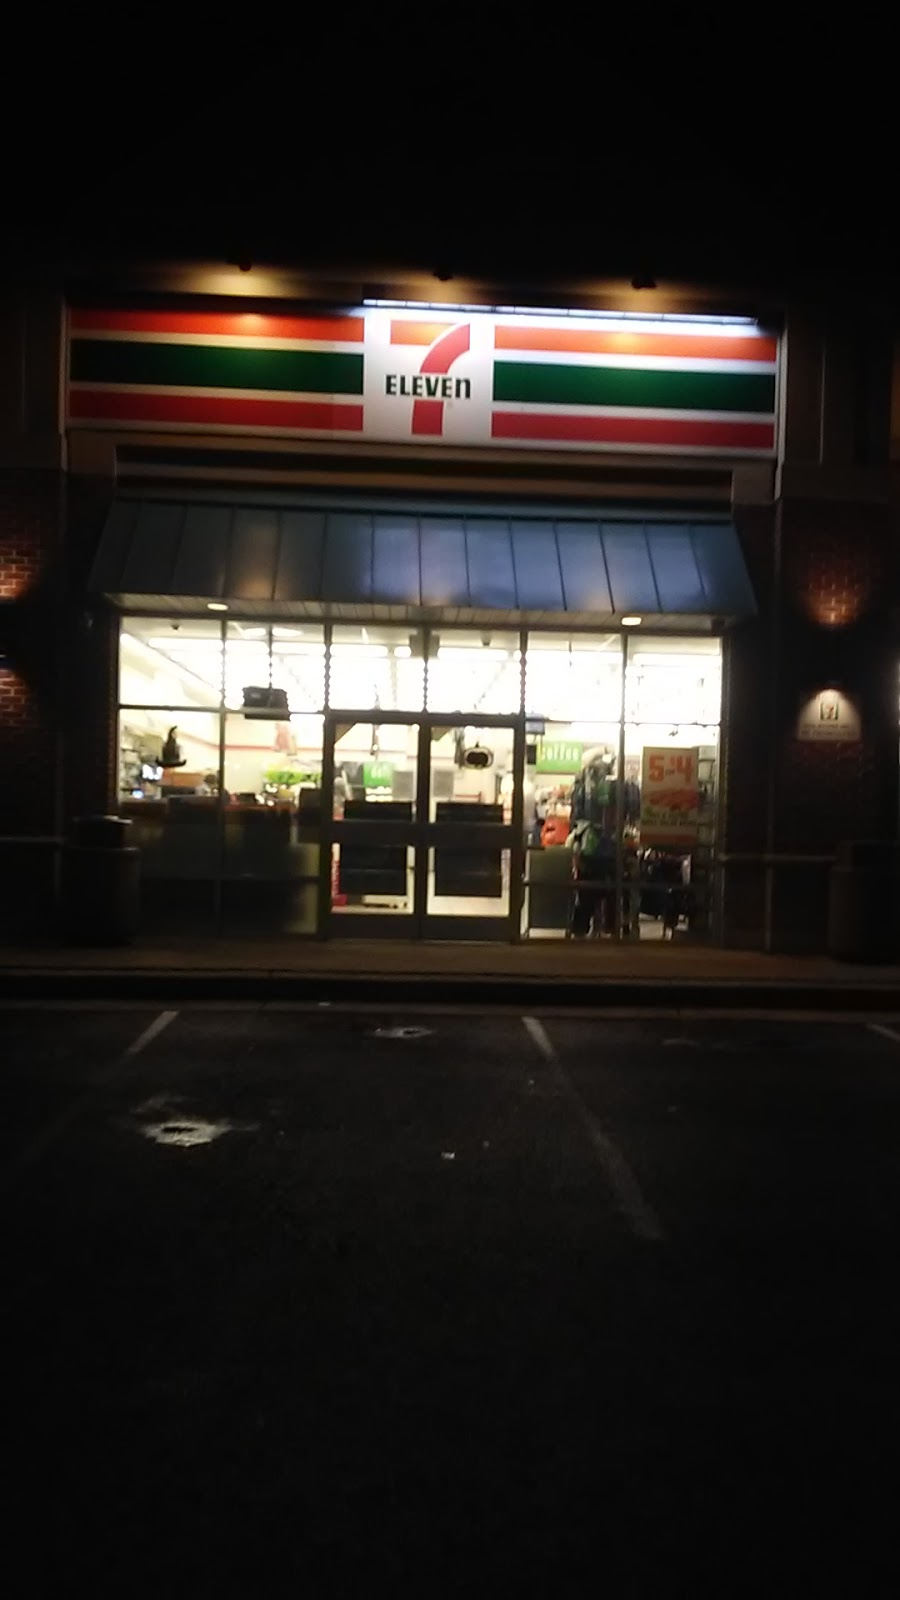 7-Eleven - Closed | bakery | 610 Compass Rd E, Middle River, MD 21220, USA | 4106864223 OR +1 410-686-4223